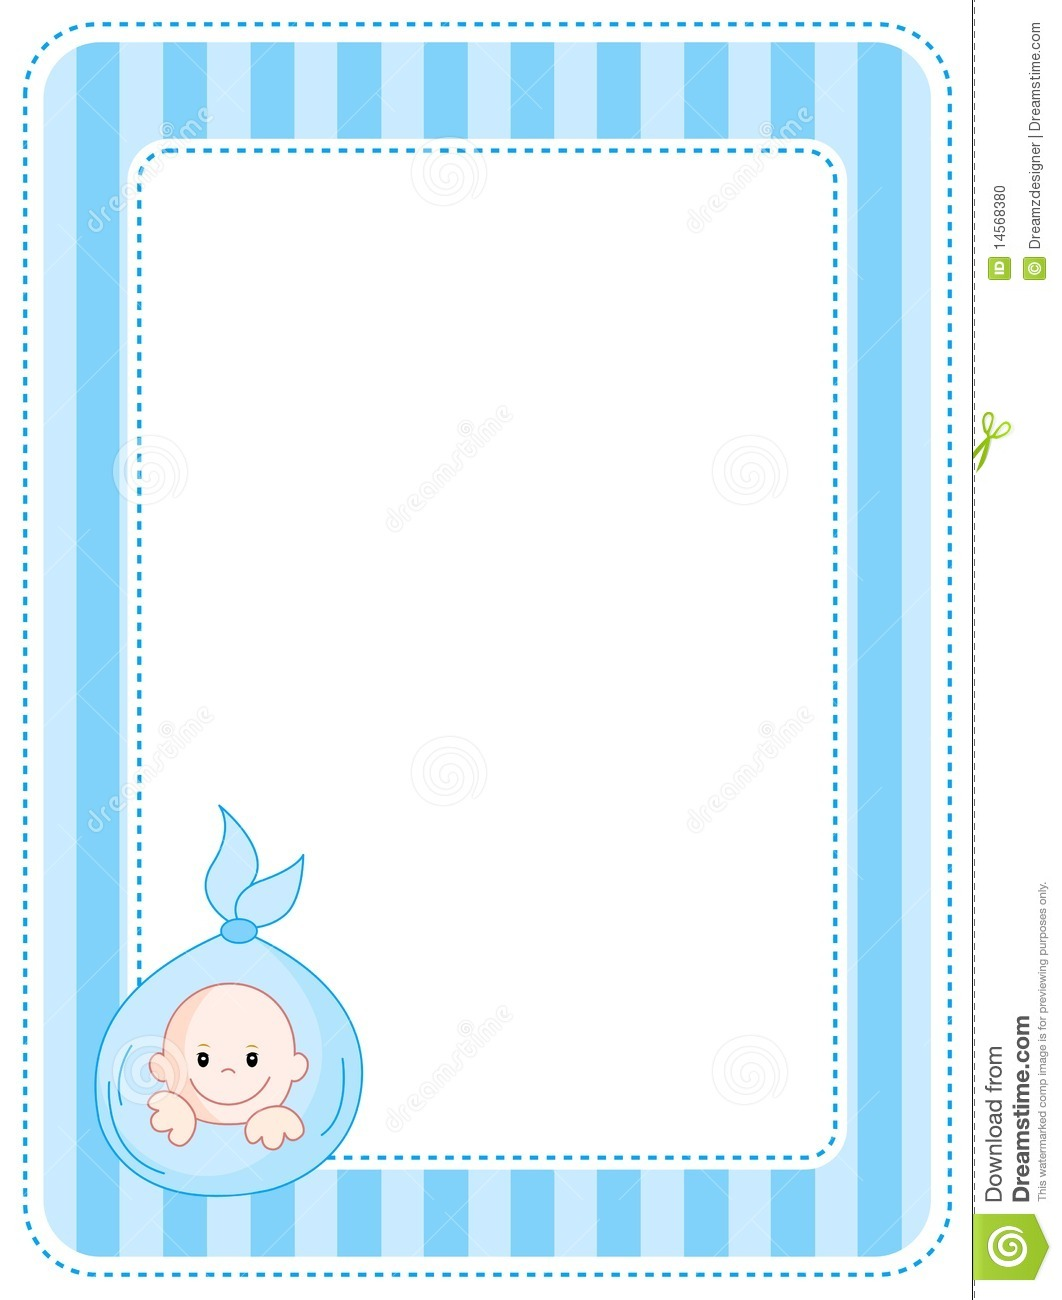 free clip art borders baby theme - photo #42